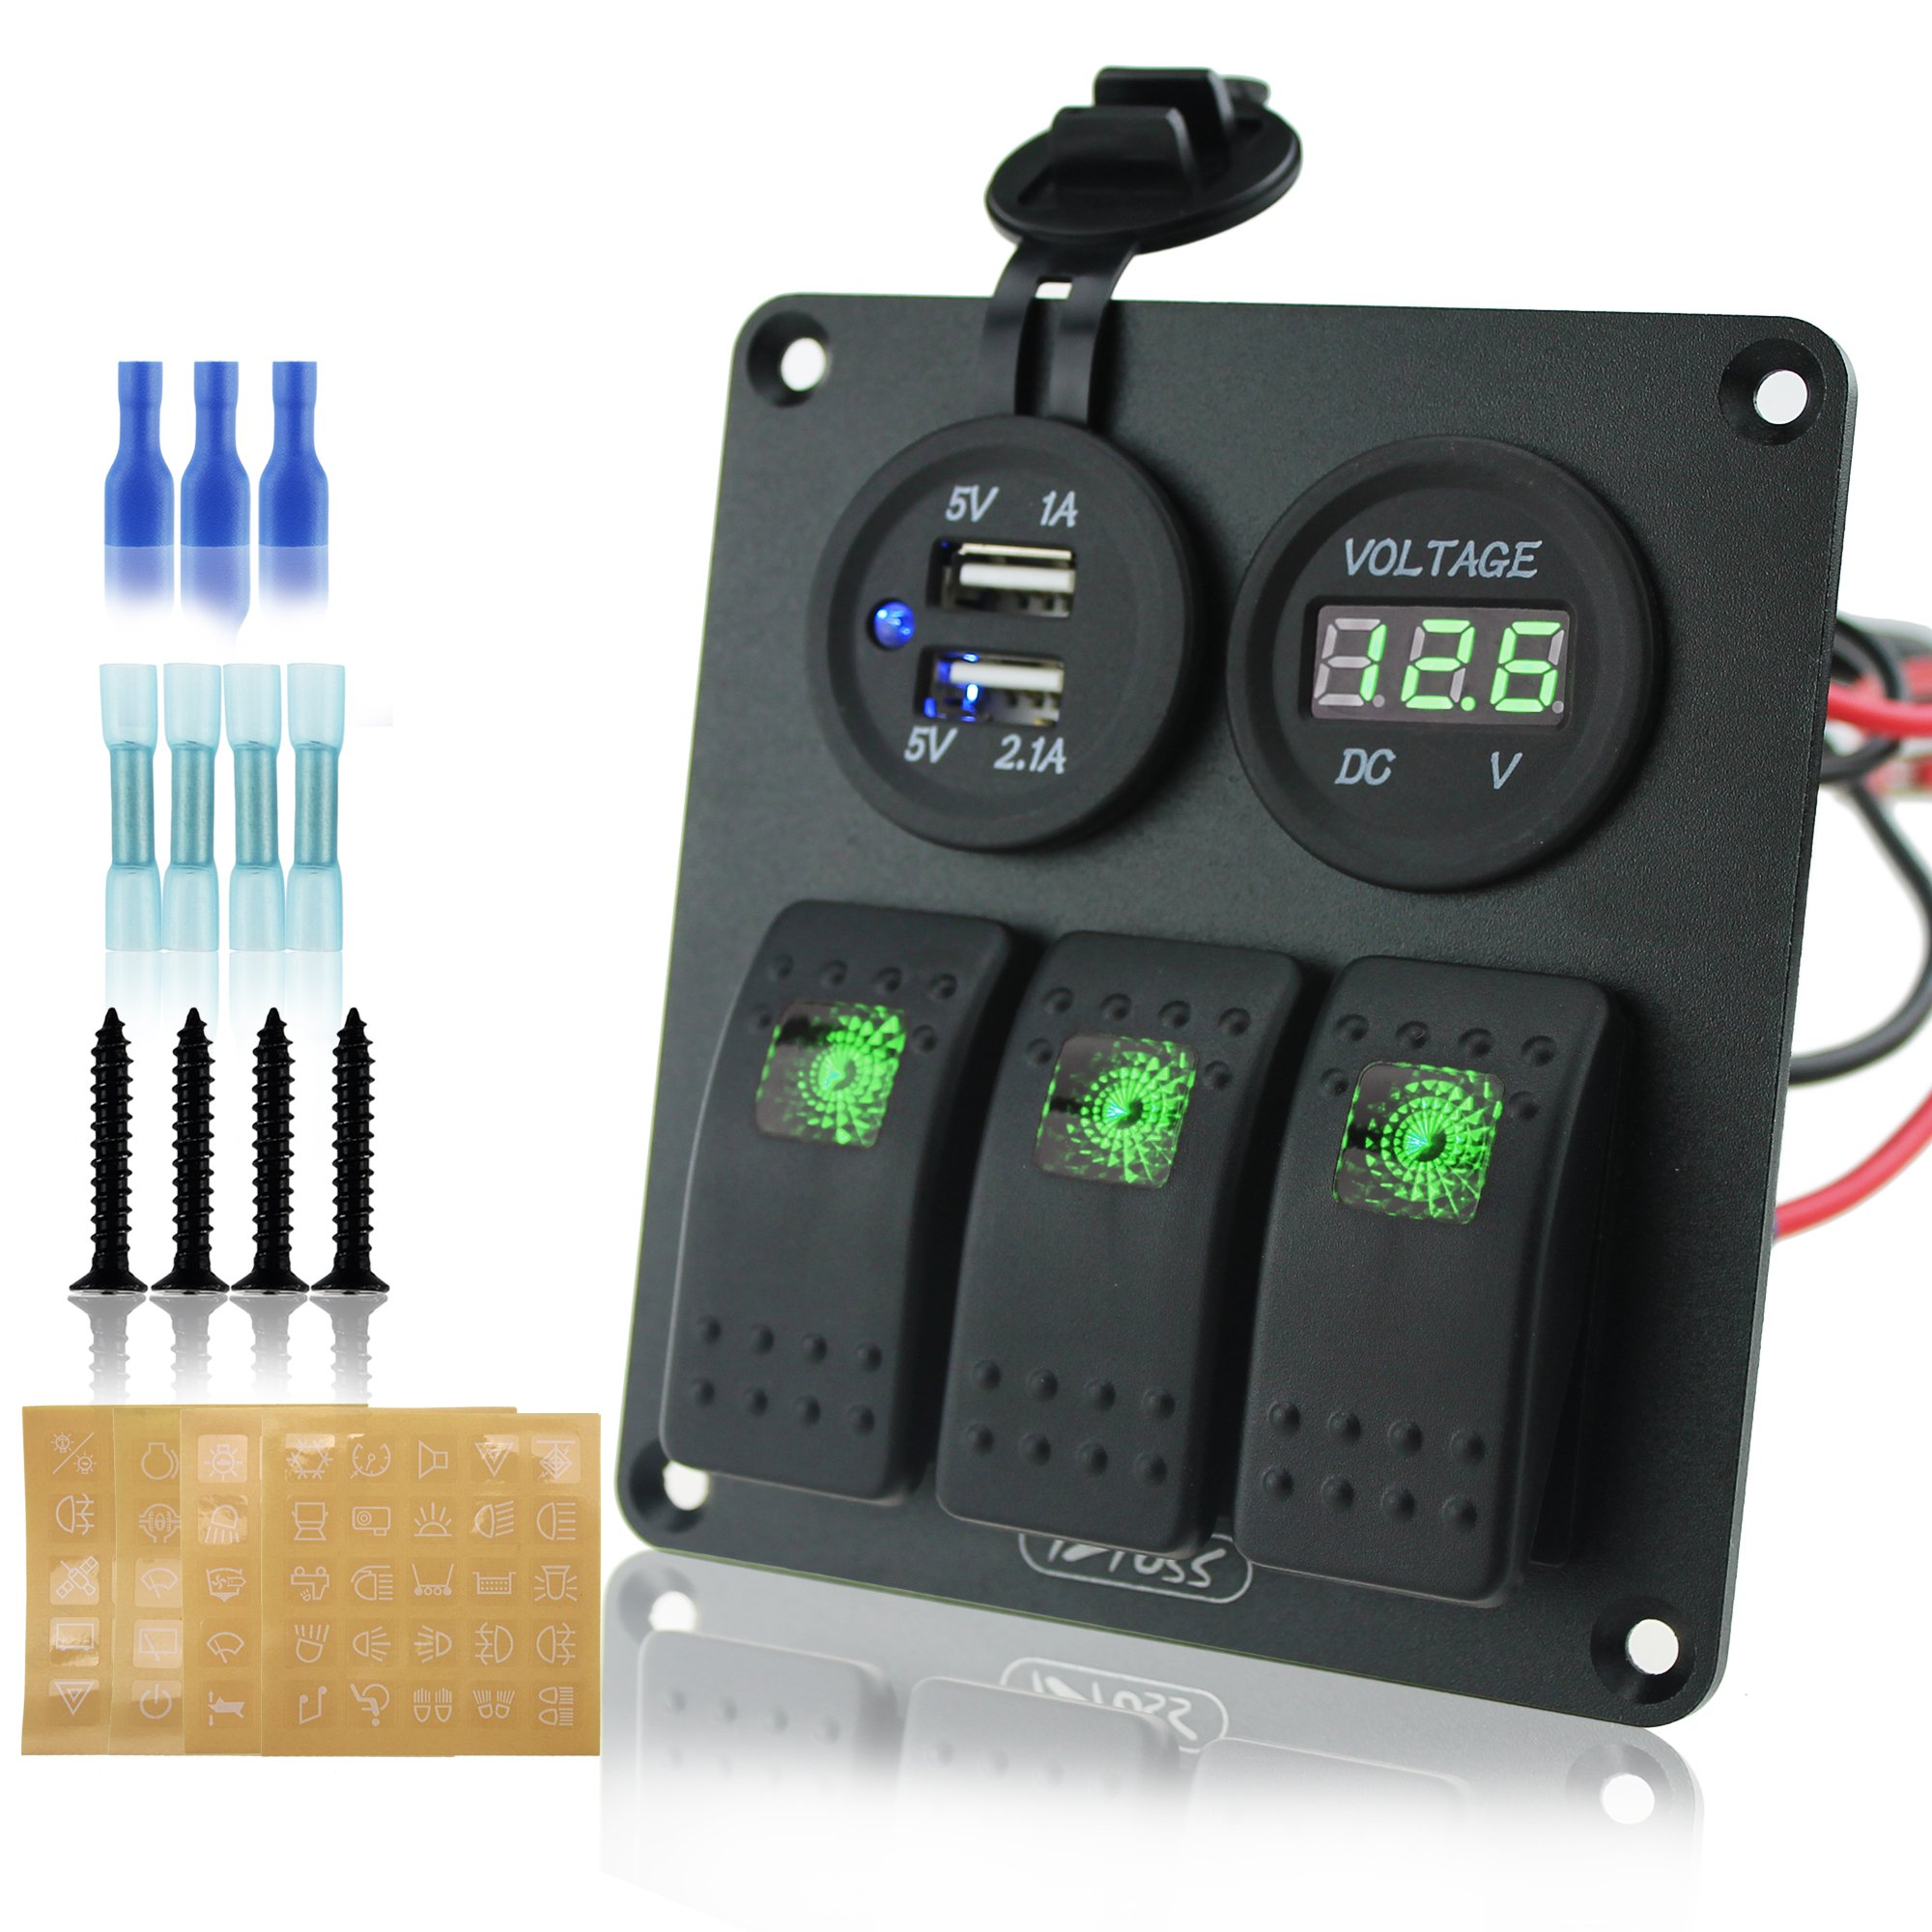 Ambuker 3 gang rocker switch panel with power socket 3.1A dual USB wiring kits and voltmeter and Decal Sticker Labels DC12V/24V for Marine Boat Car Rv Vehicles Truck by Ambuker